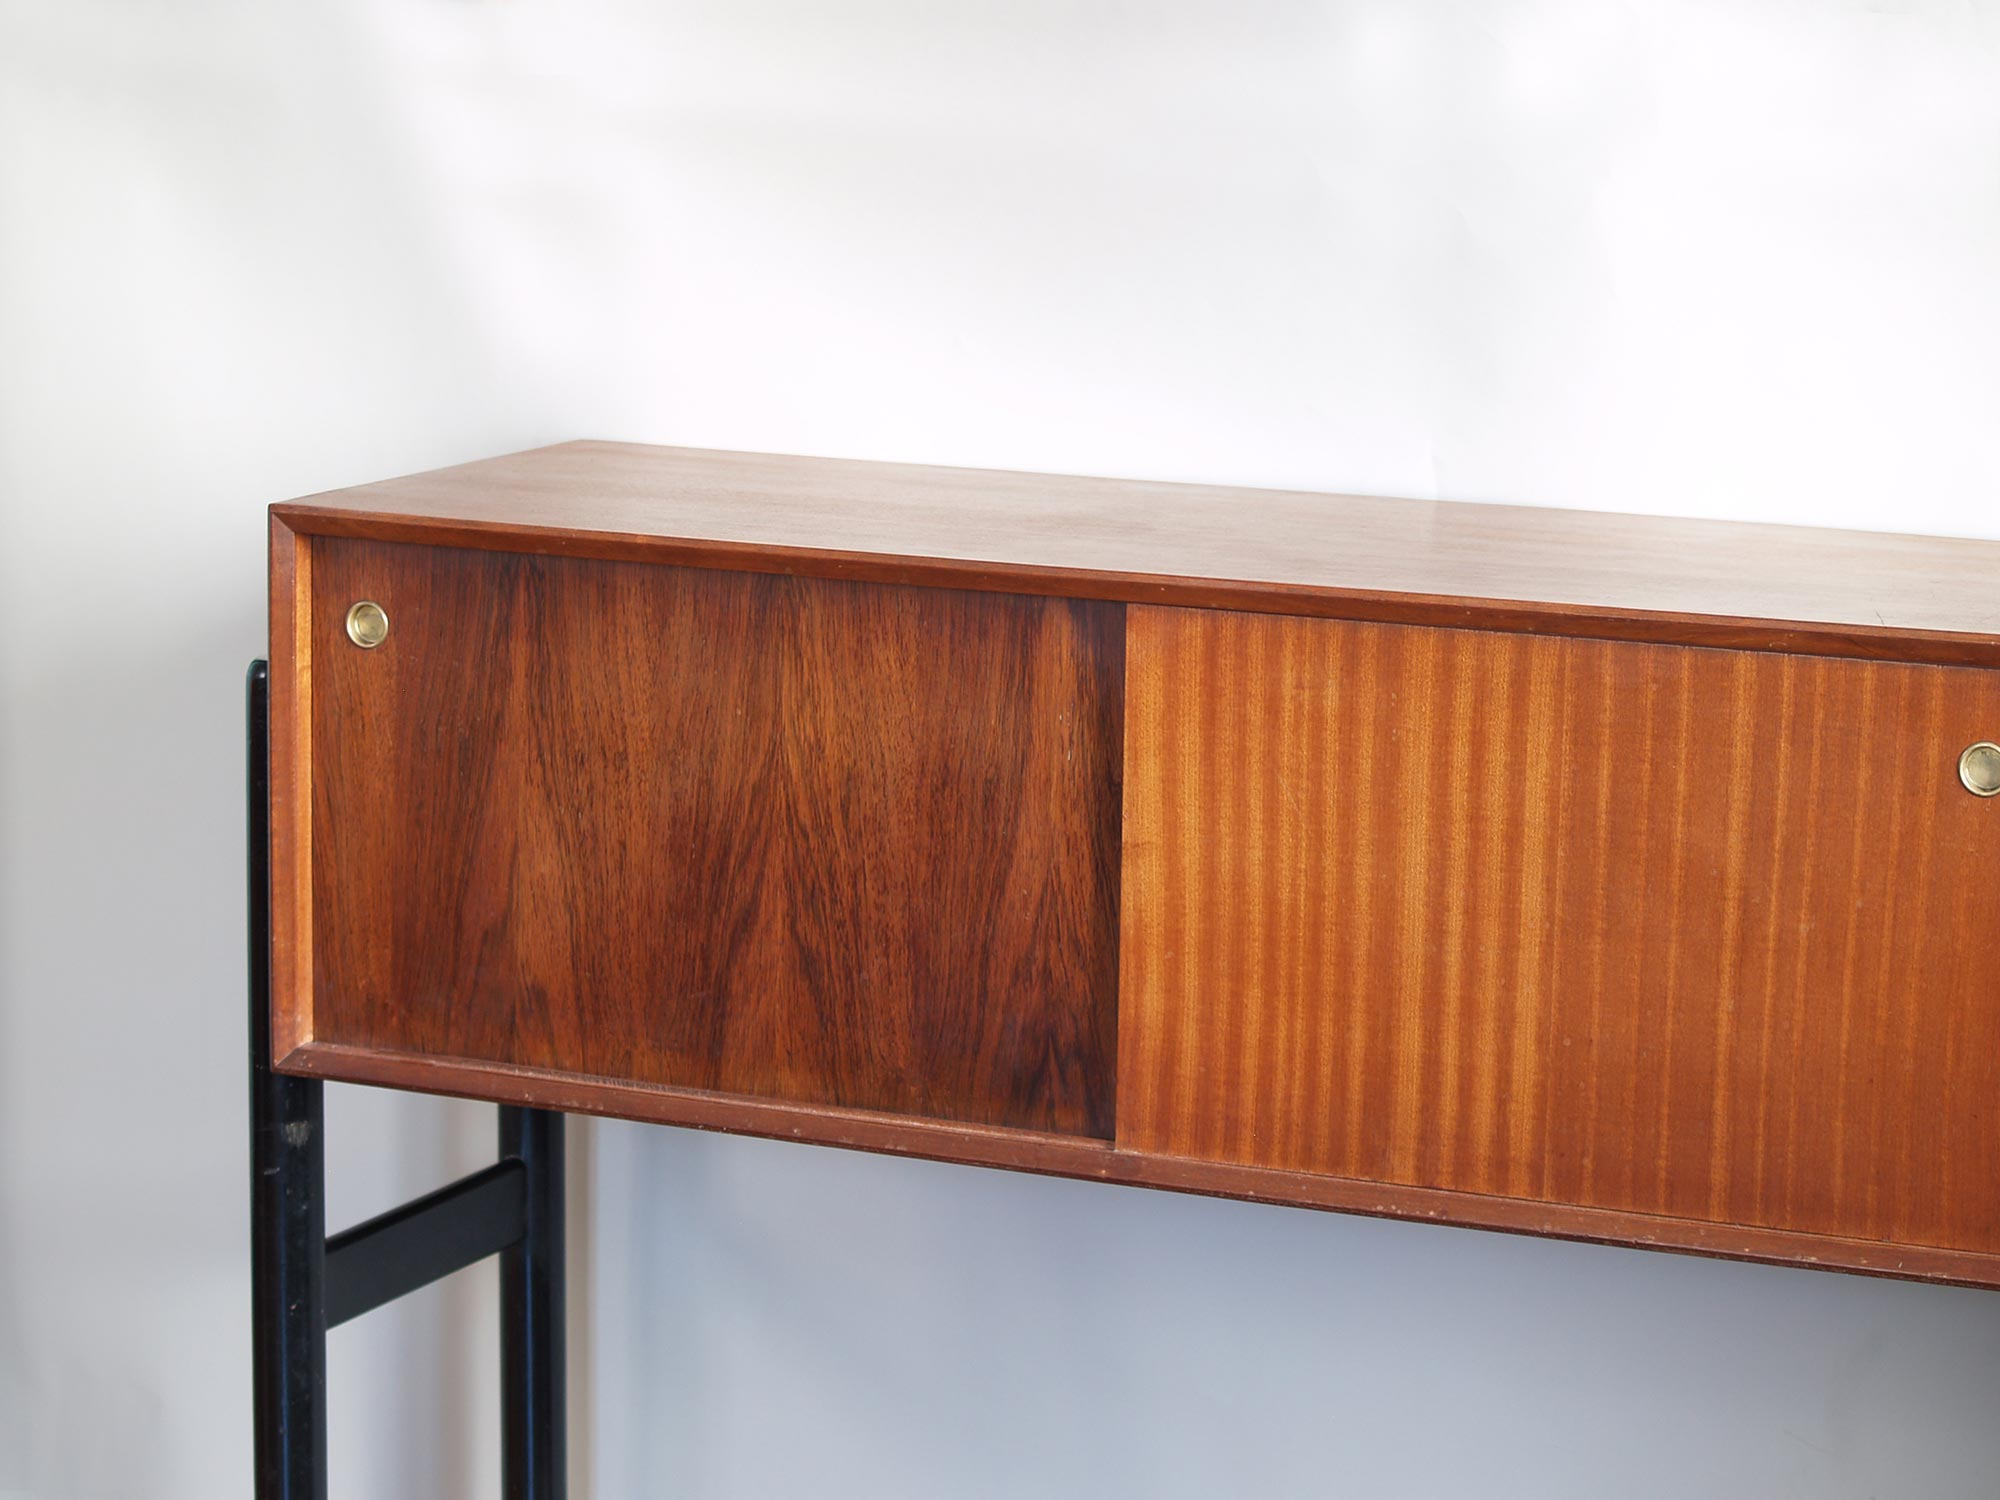 Rare unité multifonction, enfilade & salle&#x2011à&#x2011manger par Arthur Edwards pour White & Newton Ltd, Royaume&#x2011Uni (vers 1958)..Rare Unit combo, Sideboard & Dining Room set by Arthur Edwards for White & Newton Ltd, United Kingdom (ca. 1958)